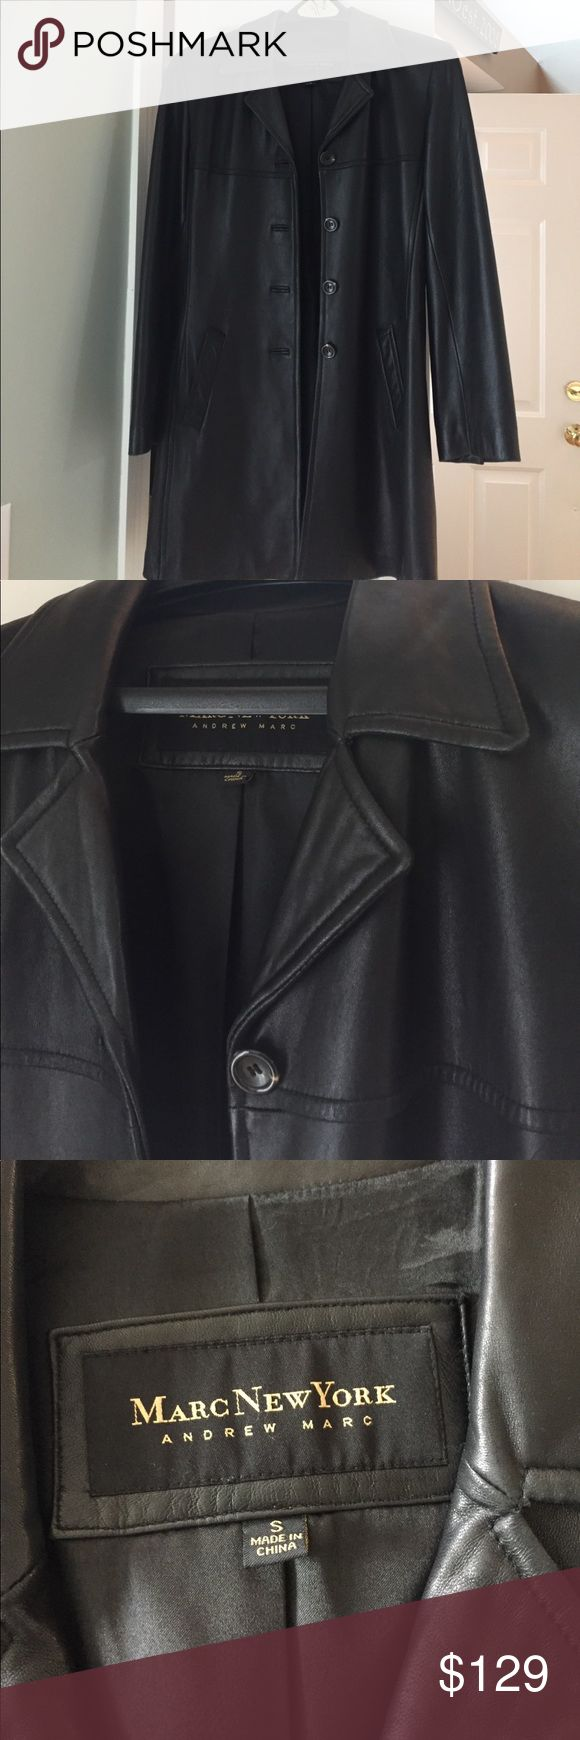 Andrew Marc black leather jacket Buttery soft mid length black leather jacket by Marc New York by Andrew Marc Andrew Marc Jackets & Coats Trench Coats